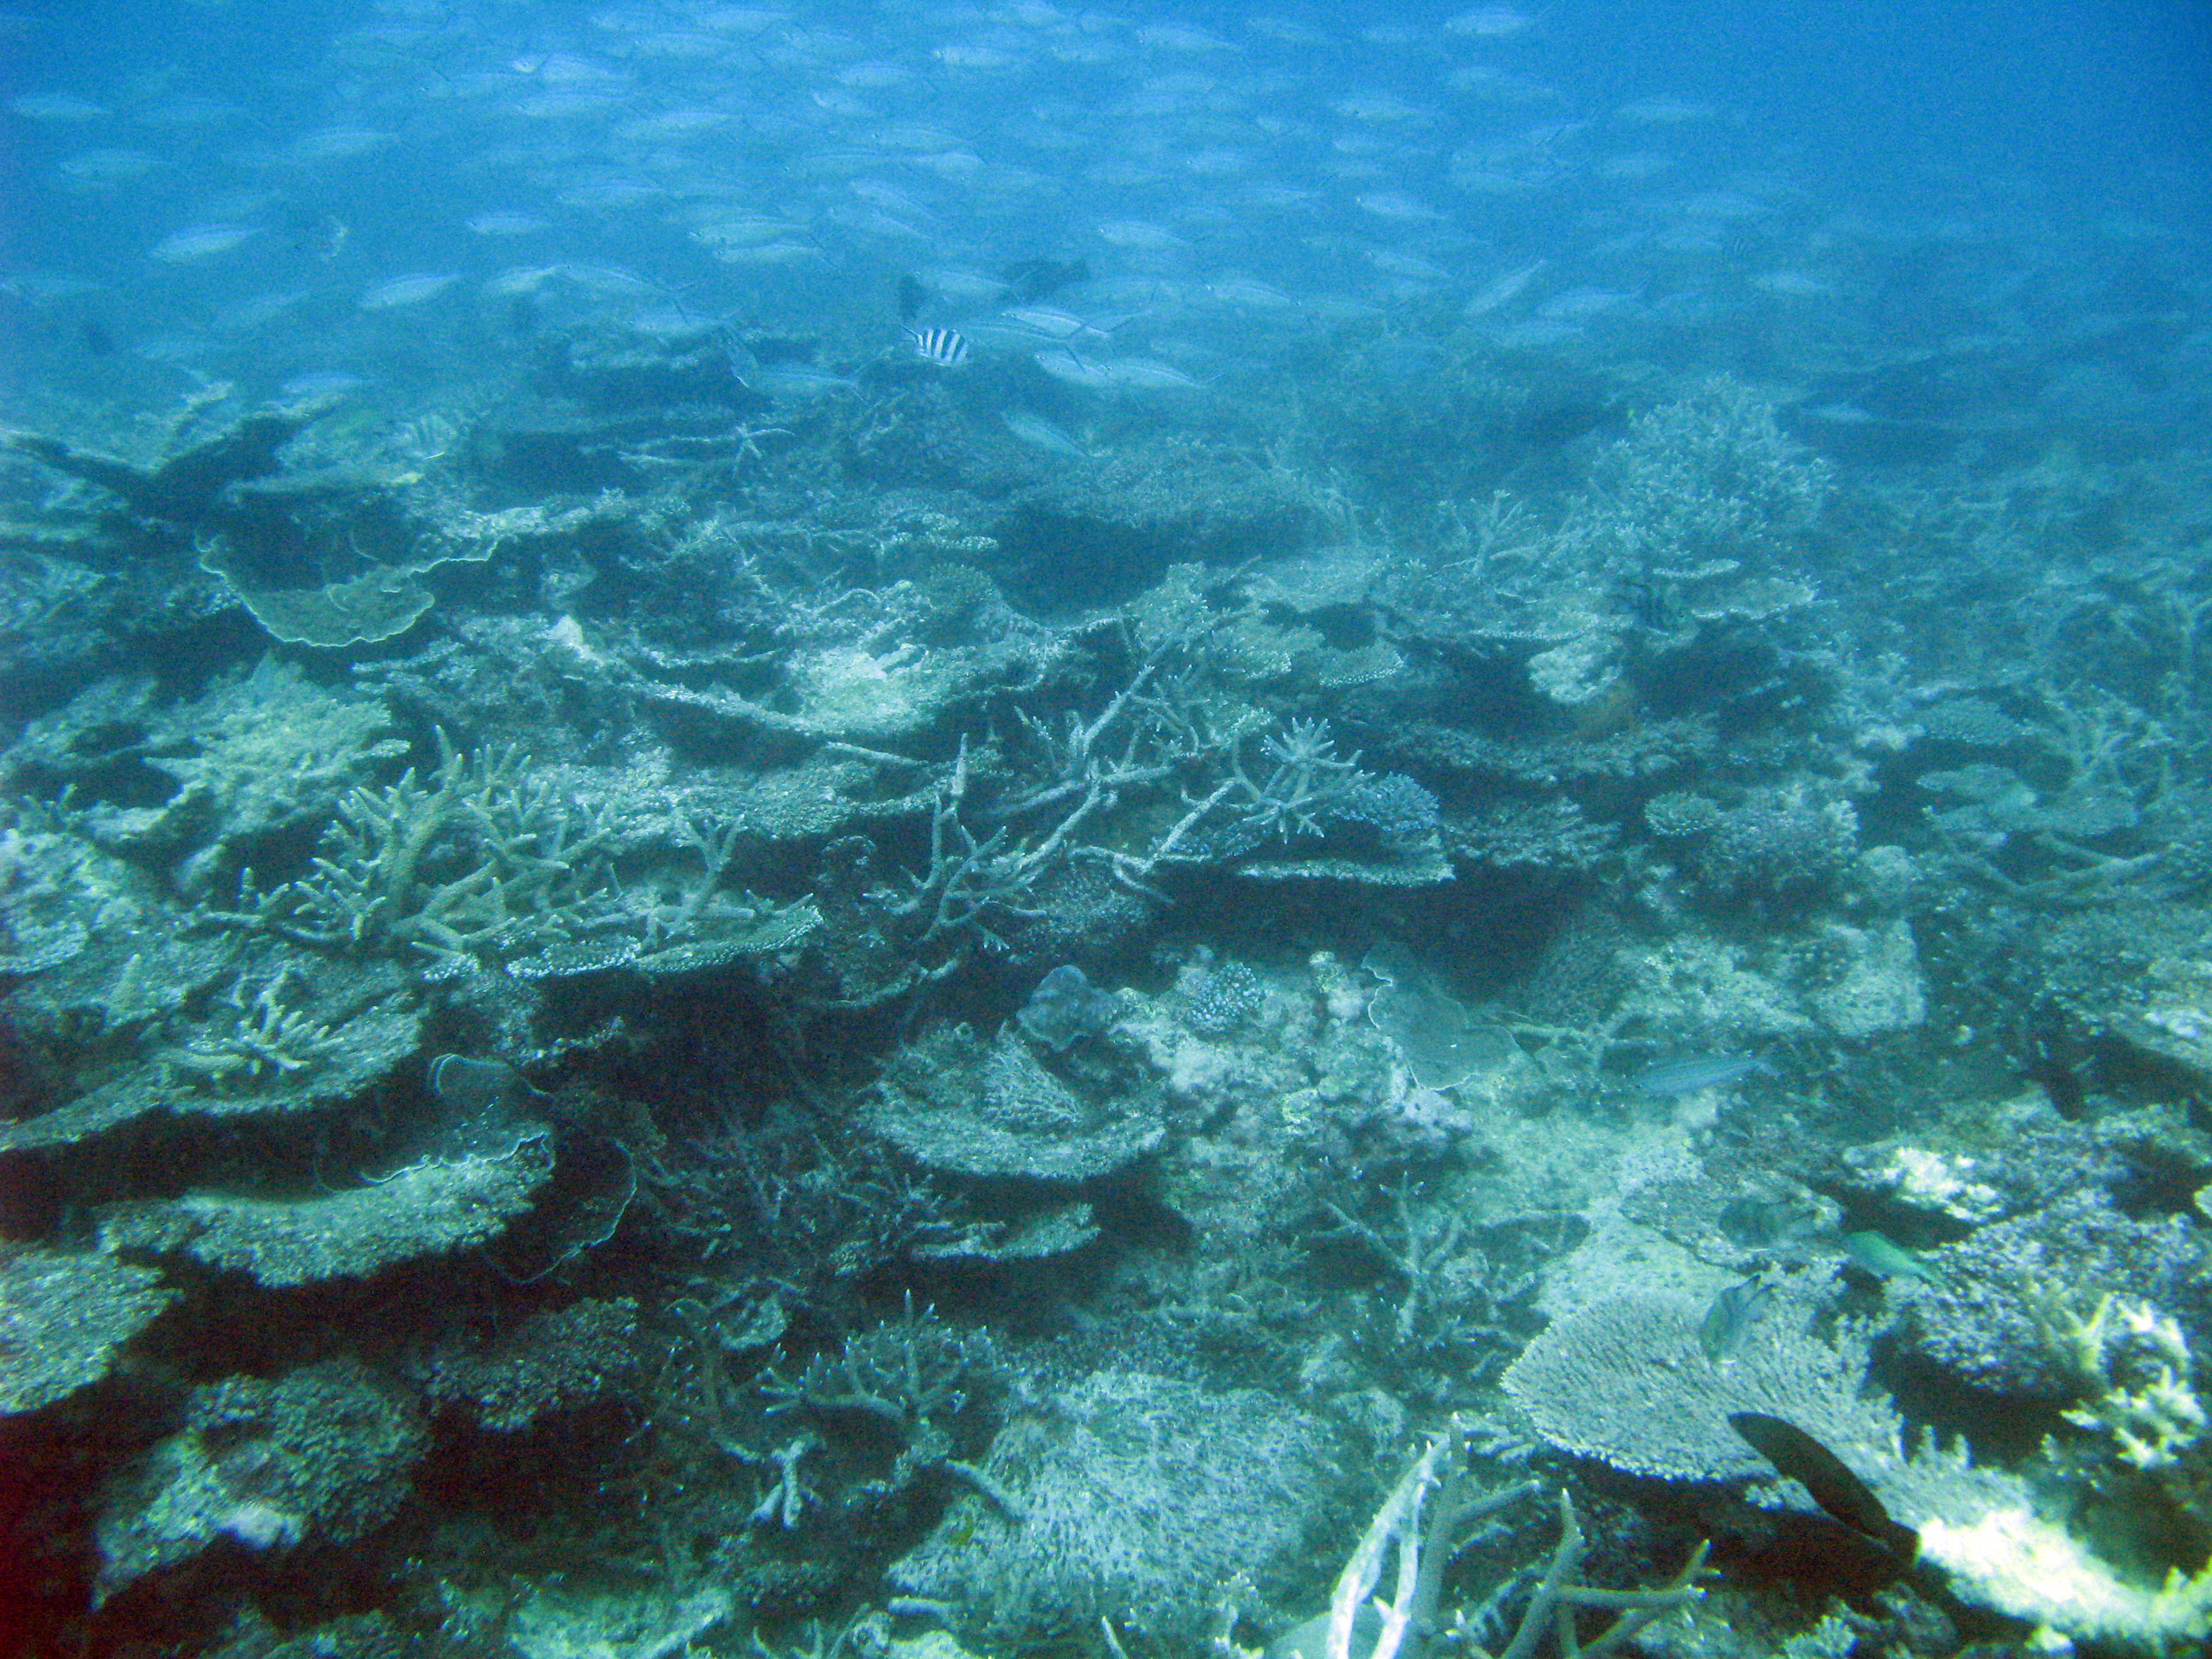 free image of coral underwater seascape